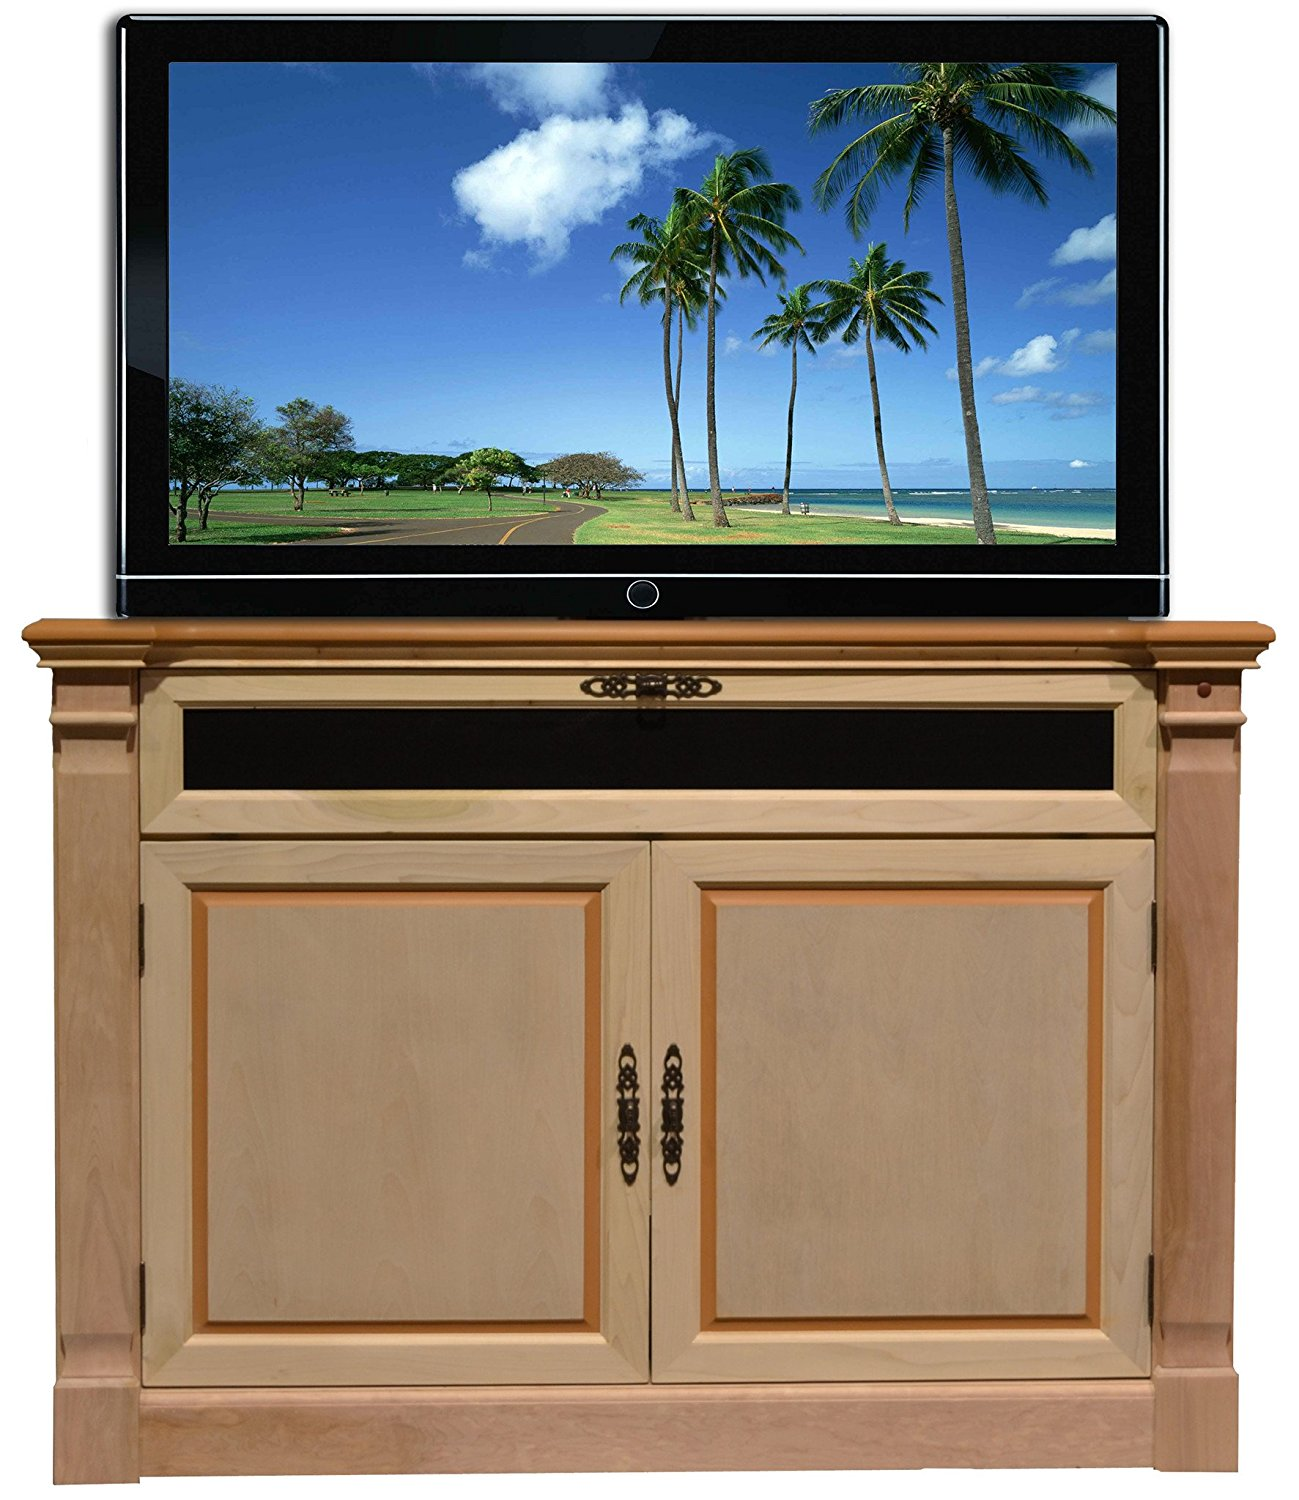 Touchstone 70152 Adonzo TV Lift Cabinet For TVs Up To 60 inches, Component And Sound Bar Storage, Whisper Lift (Unfinished)